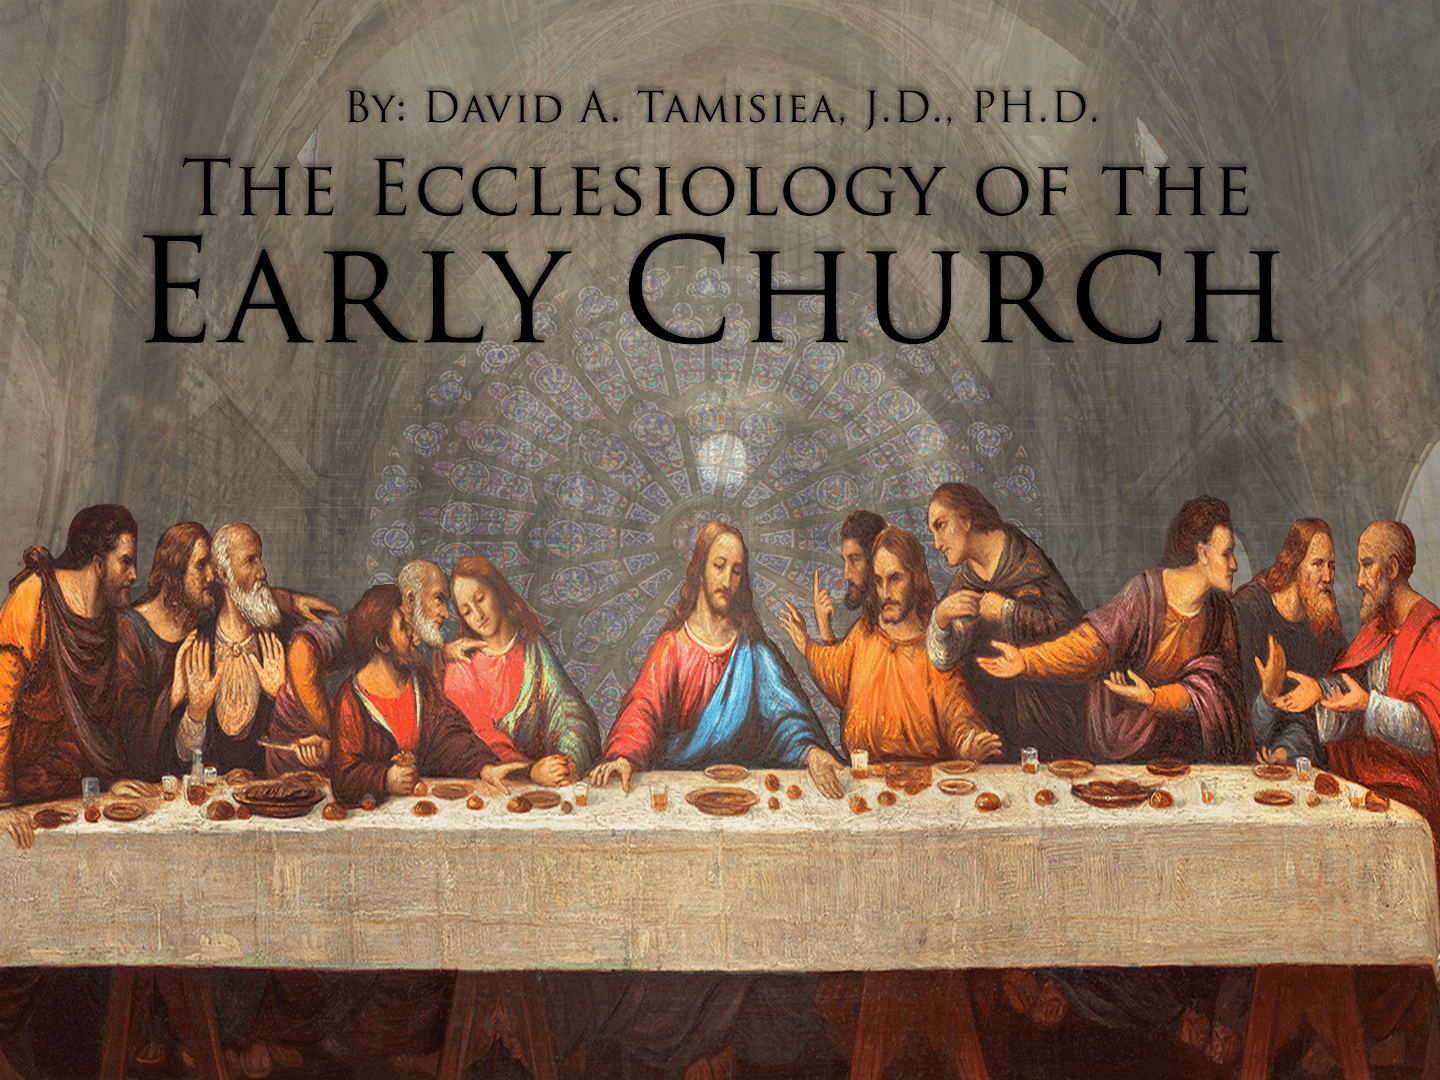 The Ecclesiology of the Early Church